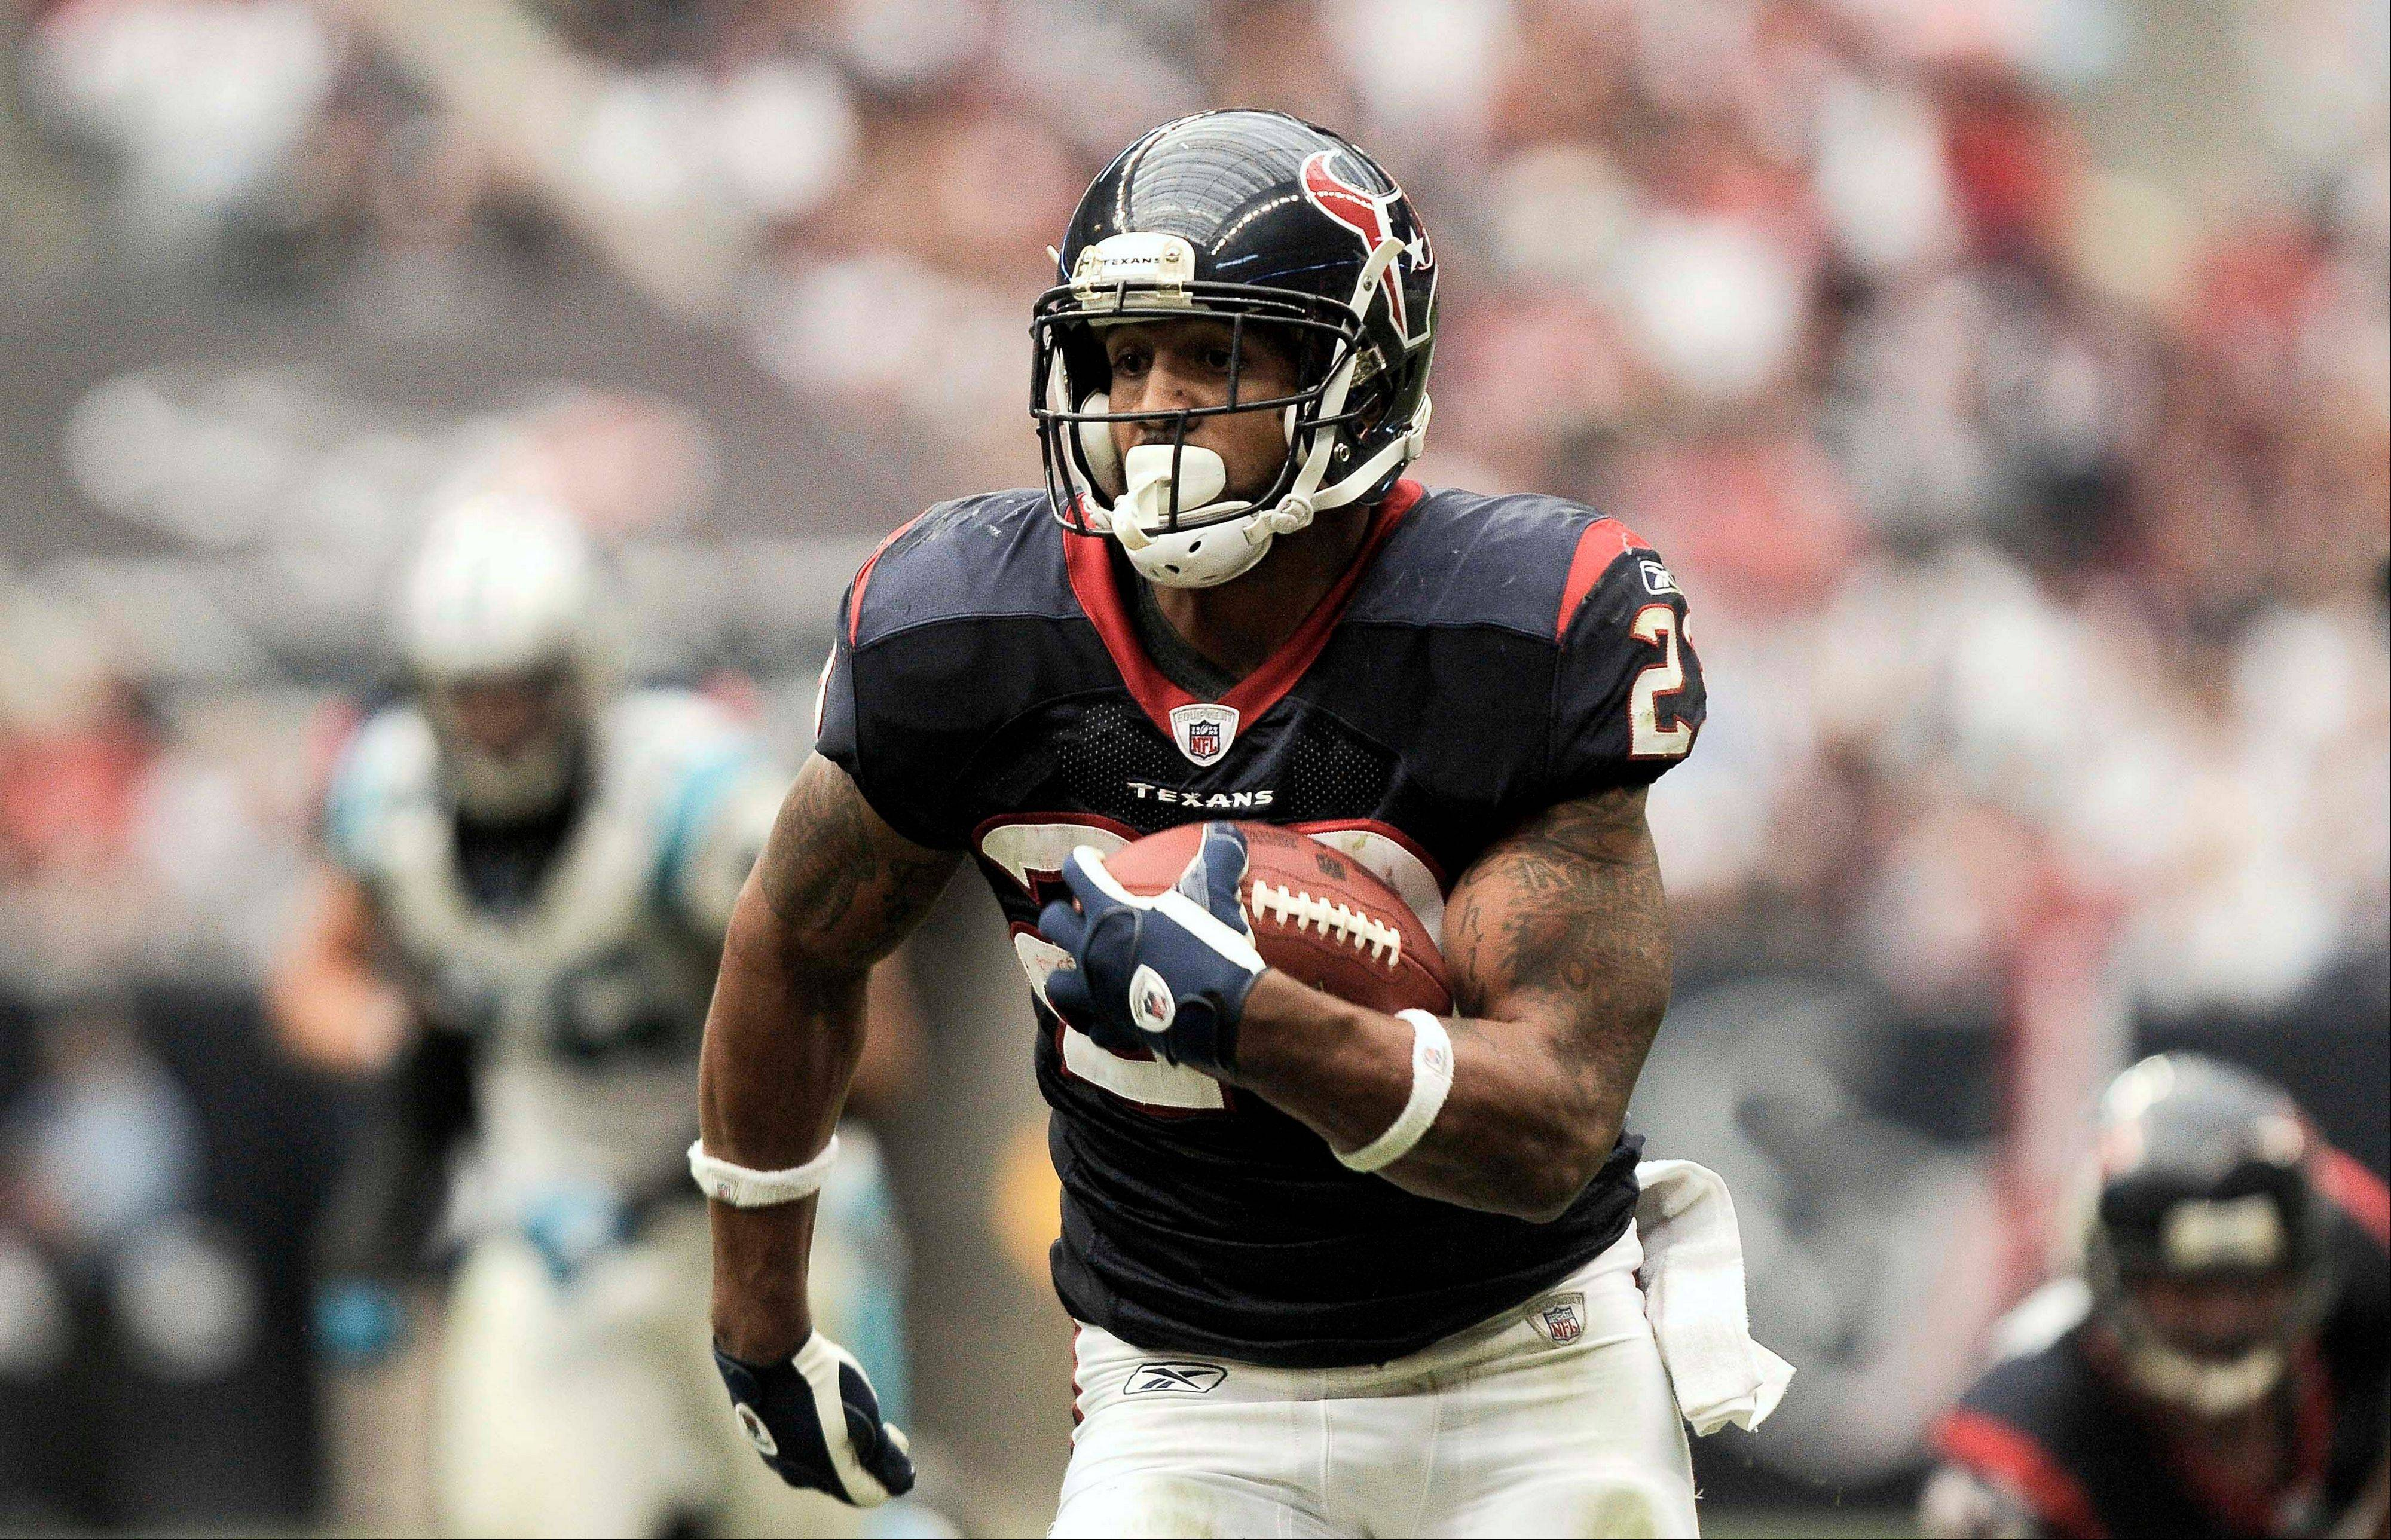 Since Week 4, Houston's Arian Foster is the No. 1 tailback in terms of garnering fantasy points.